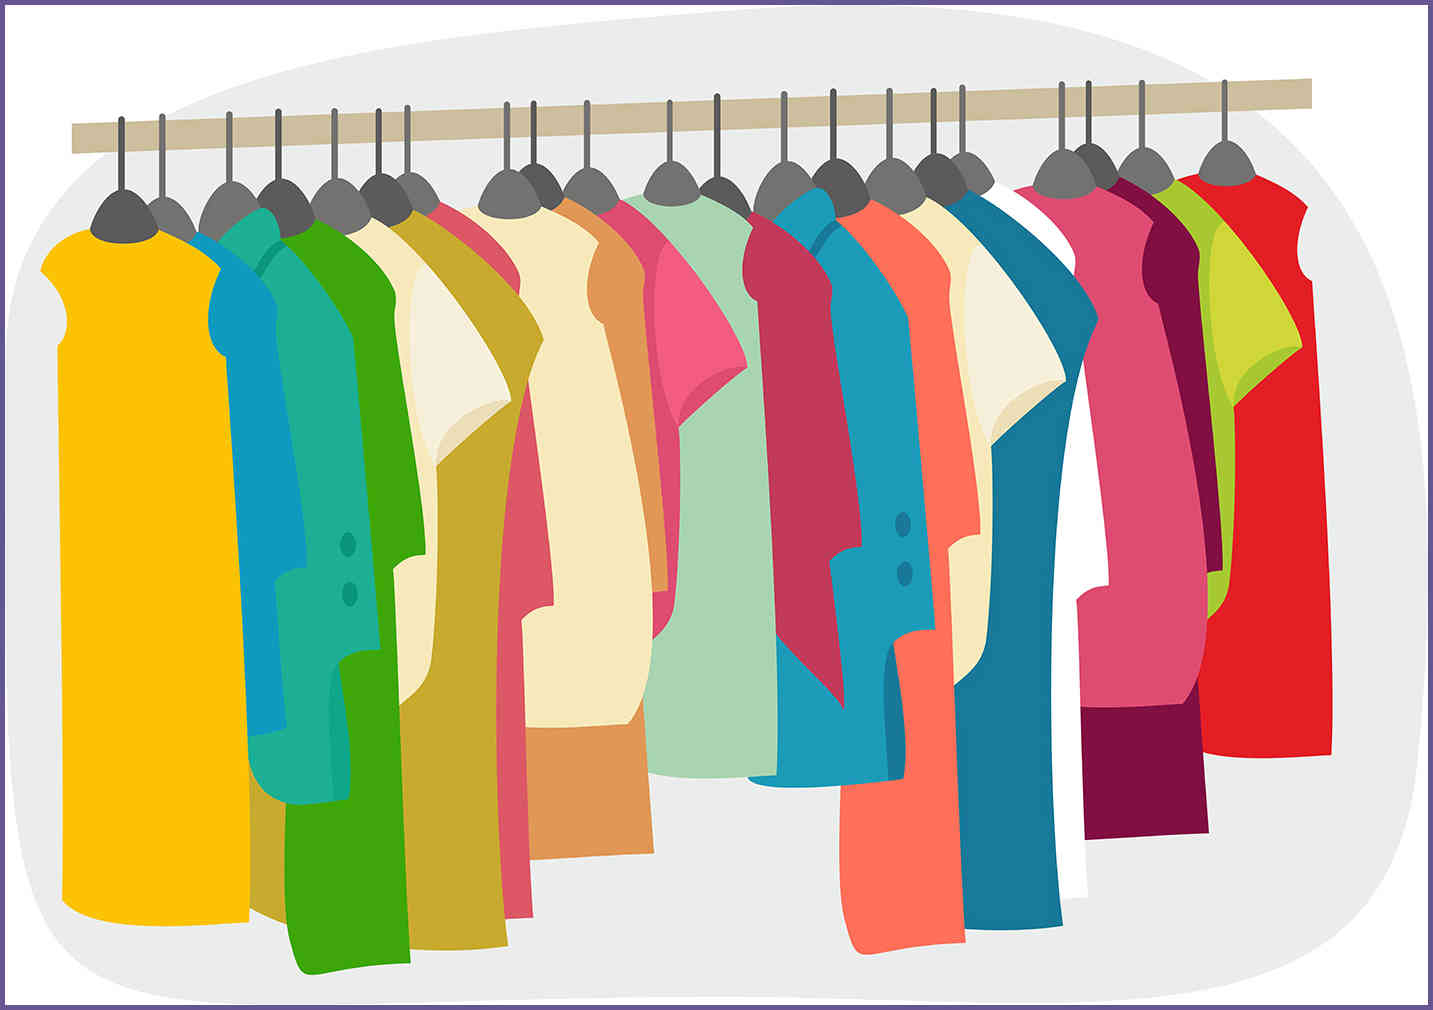 Clothing clipart closet full clothes. Free cliparts download clip